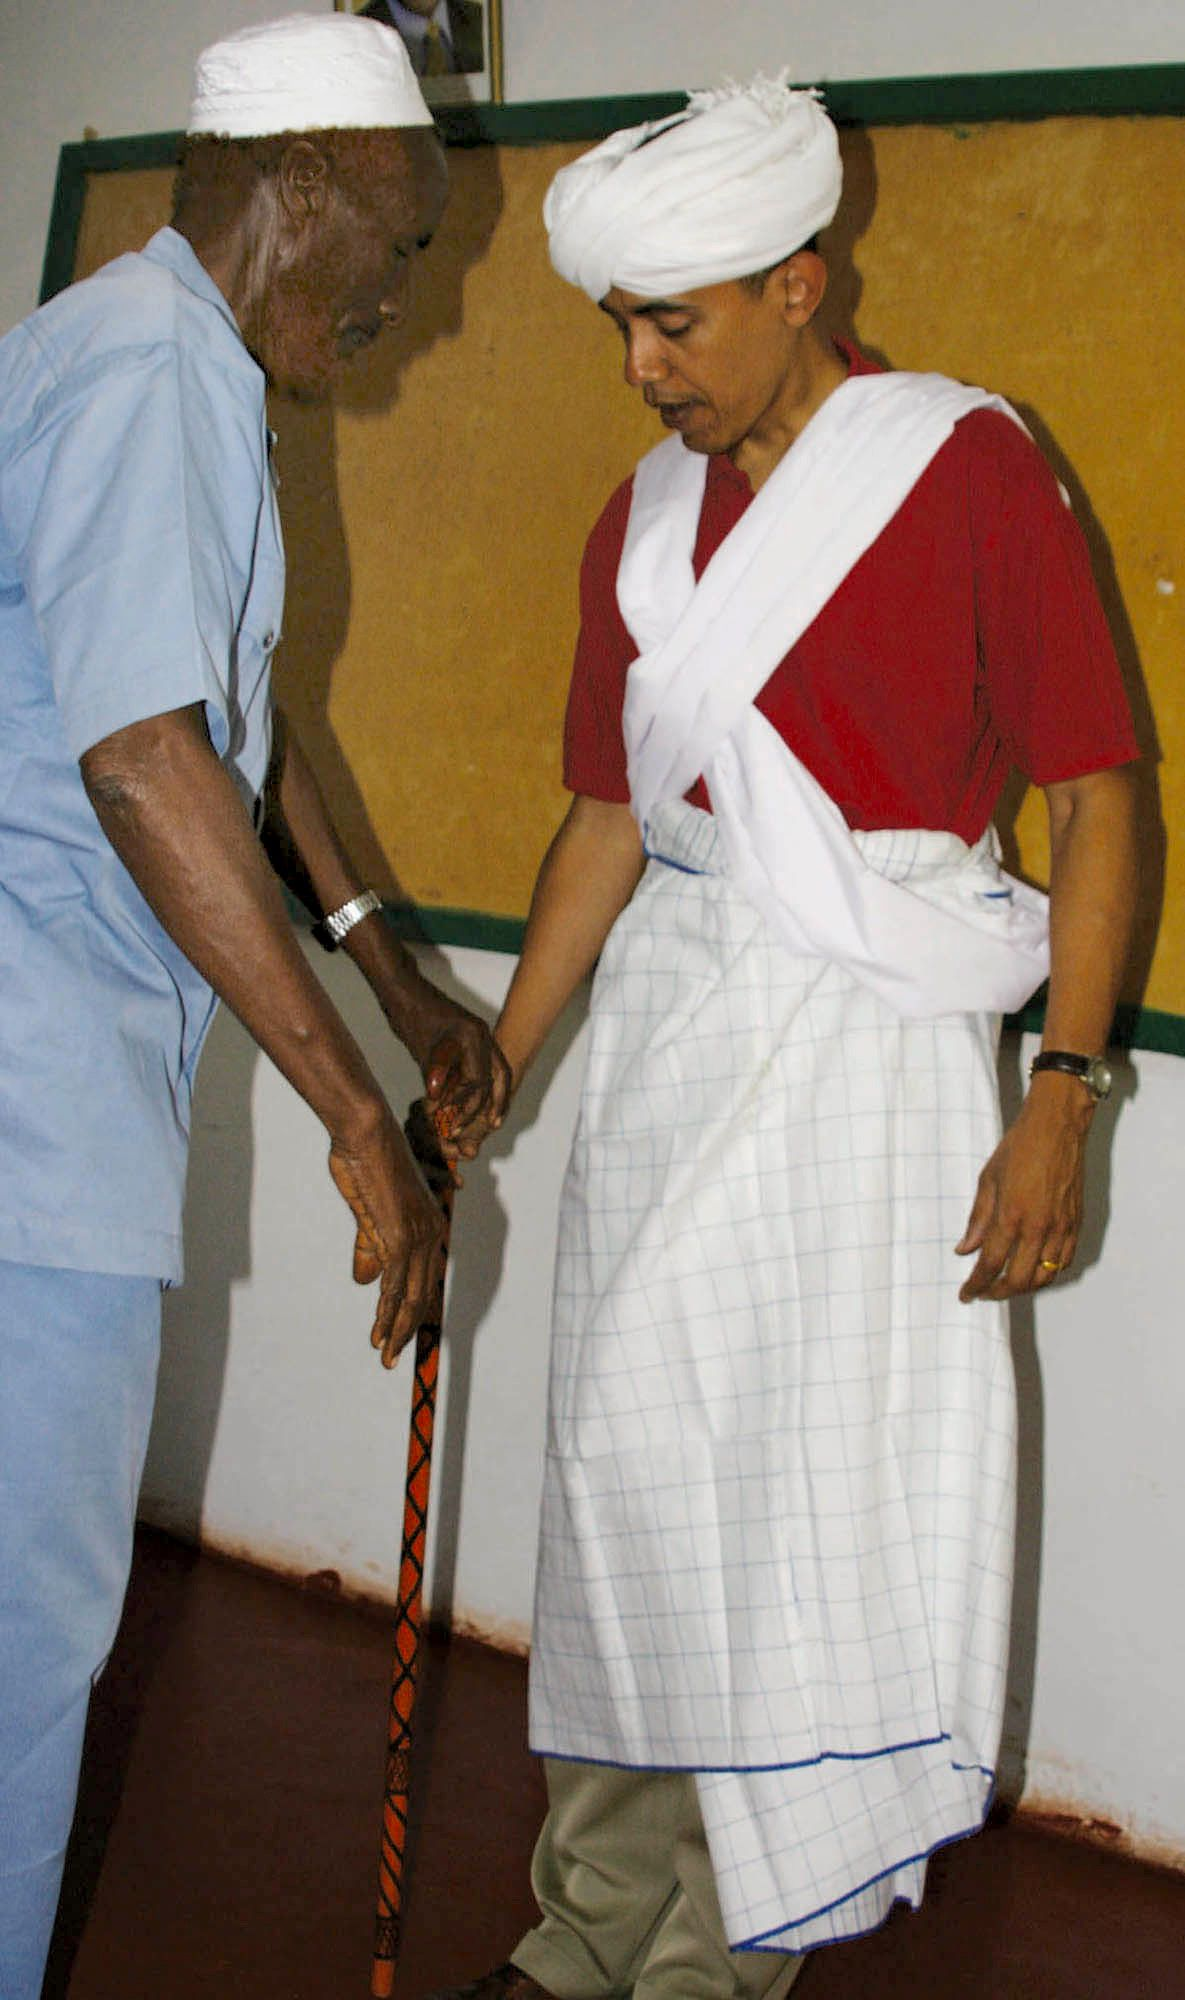 ** ADDING THE DATE OF THE PHOTOGRAPH - FILE ** Sen. Barack Obama, D-Ill., right, is dressed as a Somali Elder by Sheikh Mahmed Hassan, left, during his visit to Wajir, a rural area in northeastern Kenya, near the borders with Somalia and Ethiopia in this file photo from Aug. 27, 2006. The garb was presented to Obama by elders in Wajir. Obama's estranged late father was Kenyan and Obama visited the country in 2006, attracting thousands of well-wishers. (AP Photo)